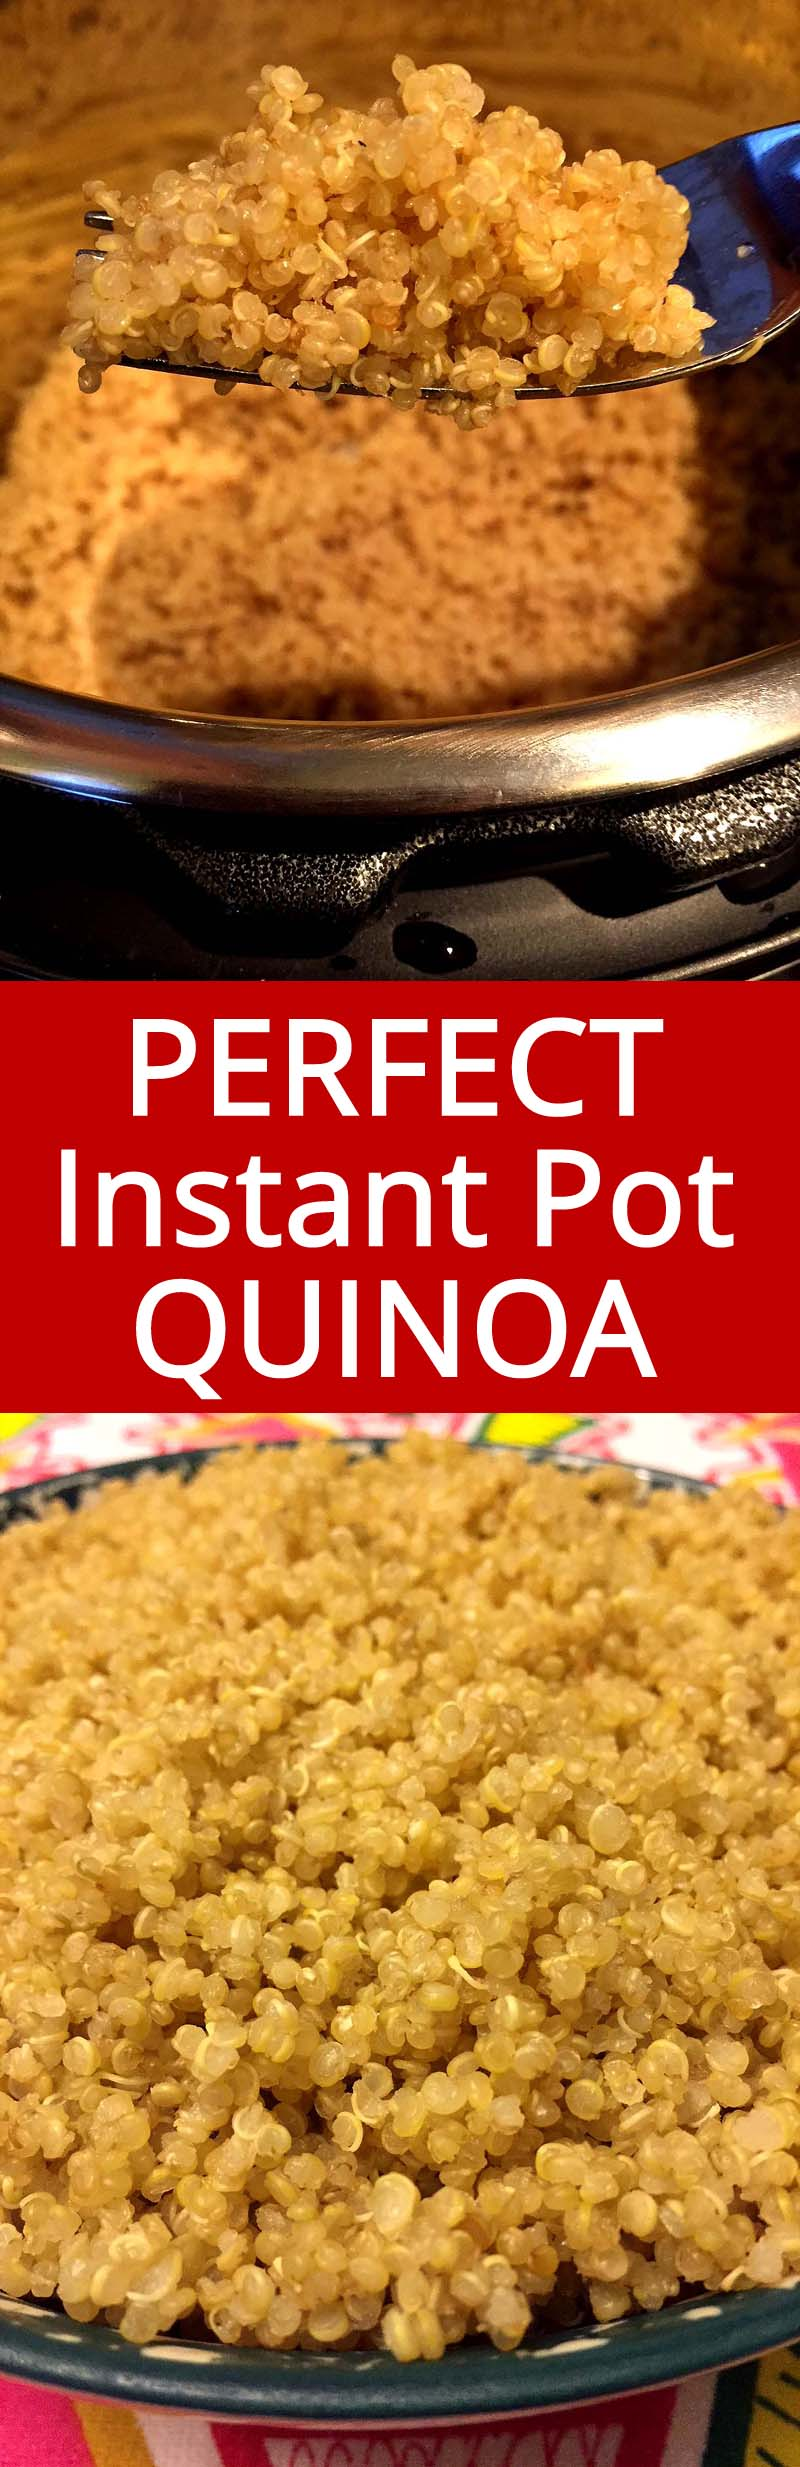 Instant Pot quinoa is so fluffy and tasty! Instant Pot cooks perfect quinoa so quickly and easily! I now always make quinoa in my Instant Pot pressure cooker!